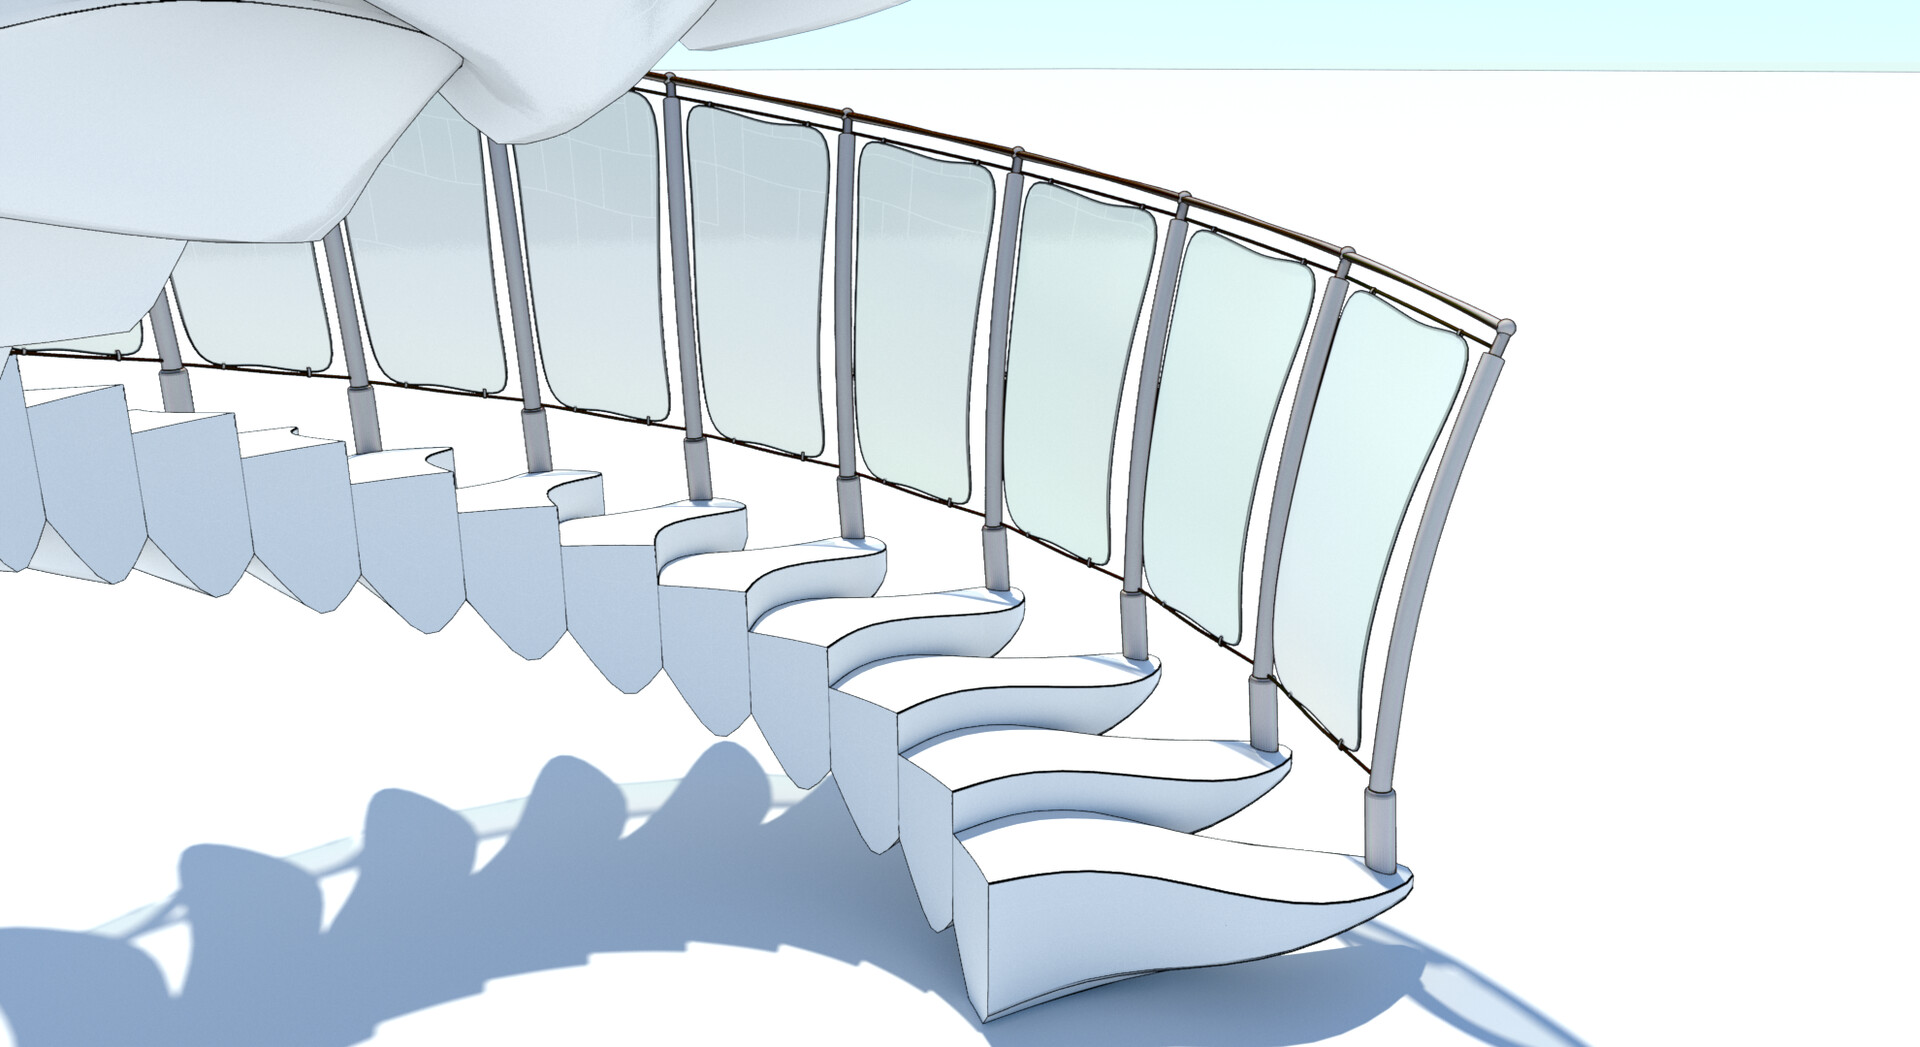 Procedural spiral stairs - each element type is contained in a separate source mesh, which is then procedurally replicated and transformed; some of the geometry is also procedurally adjusted on-the-fly for best results - bottom close up - cel edge shader